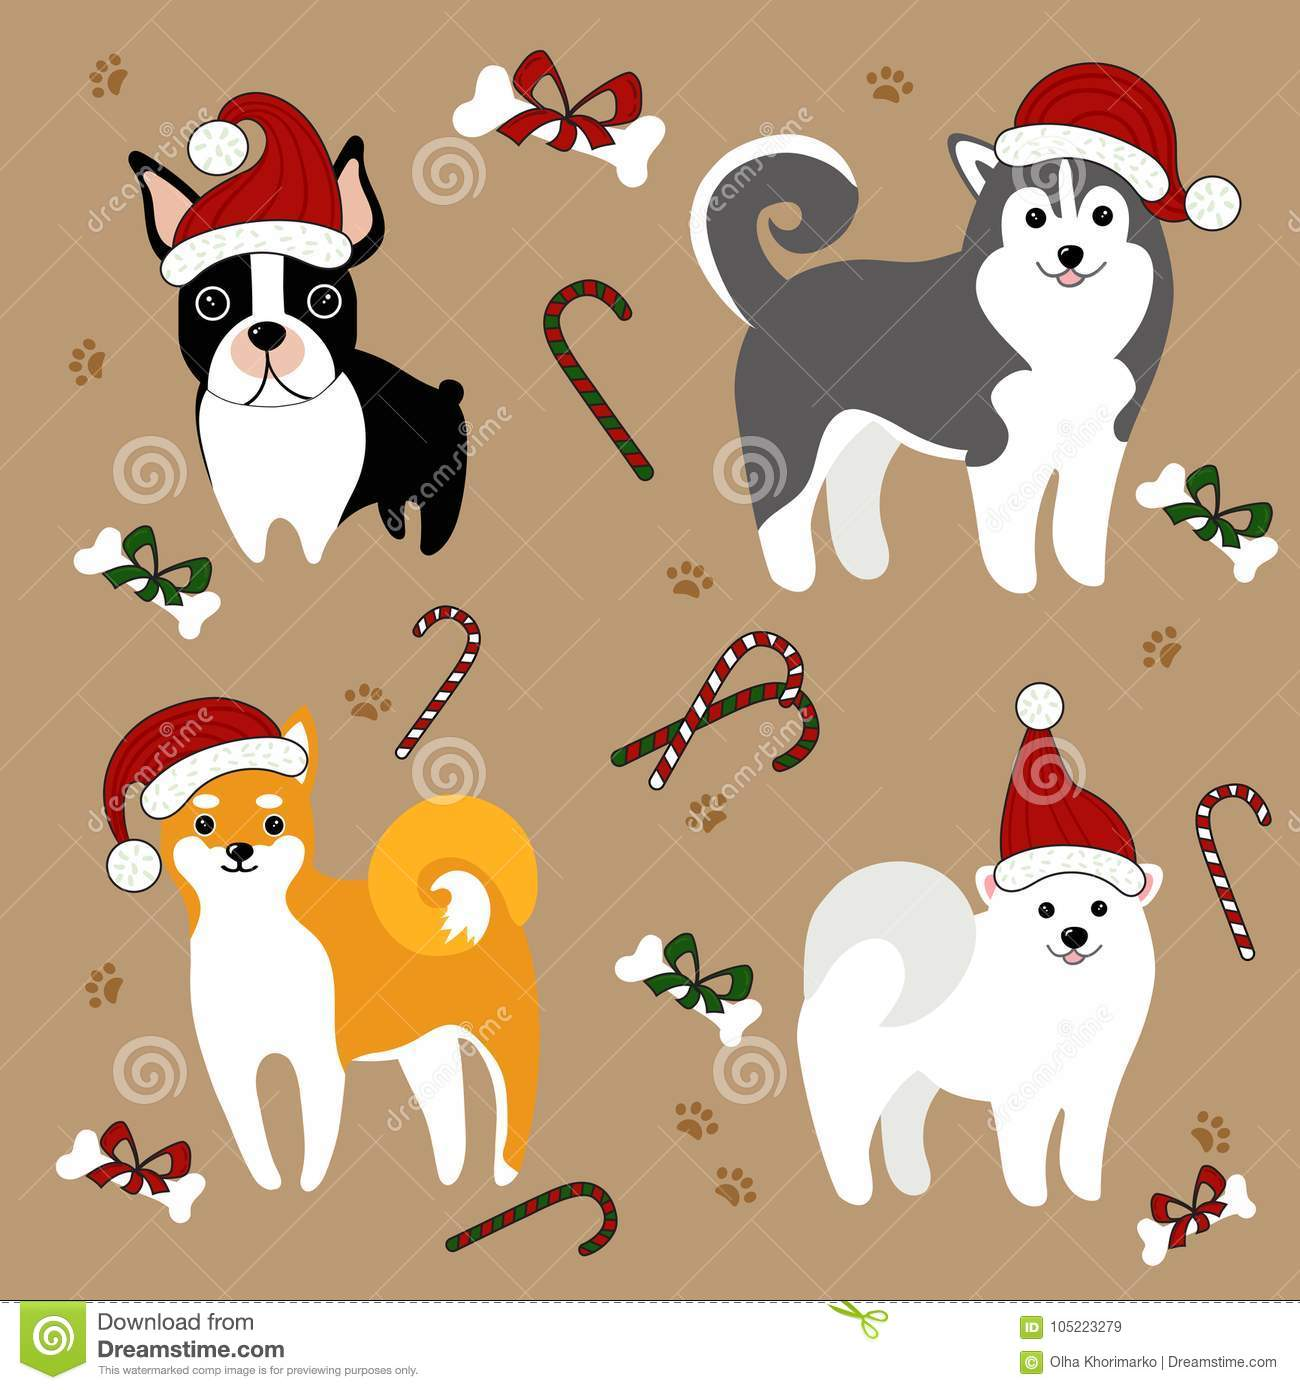 Dogs In Santa Hats. Christmas Card Stock Vector - Illustration of ...